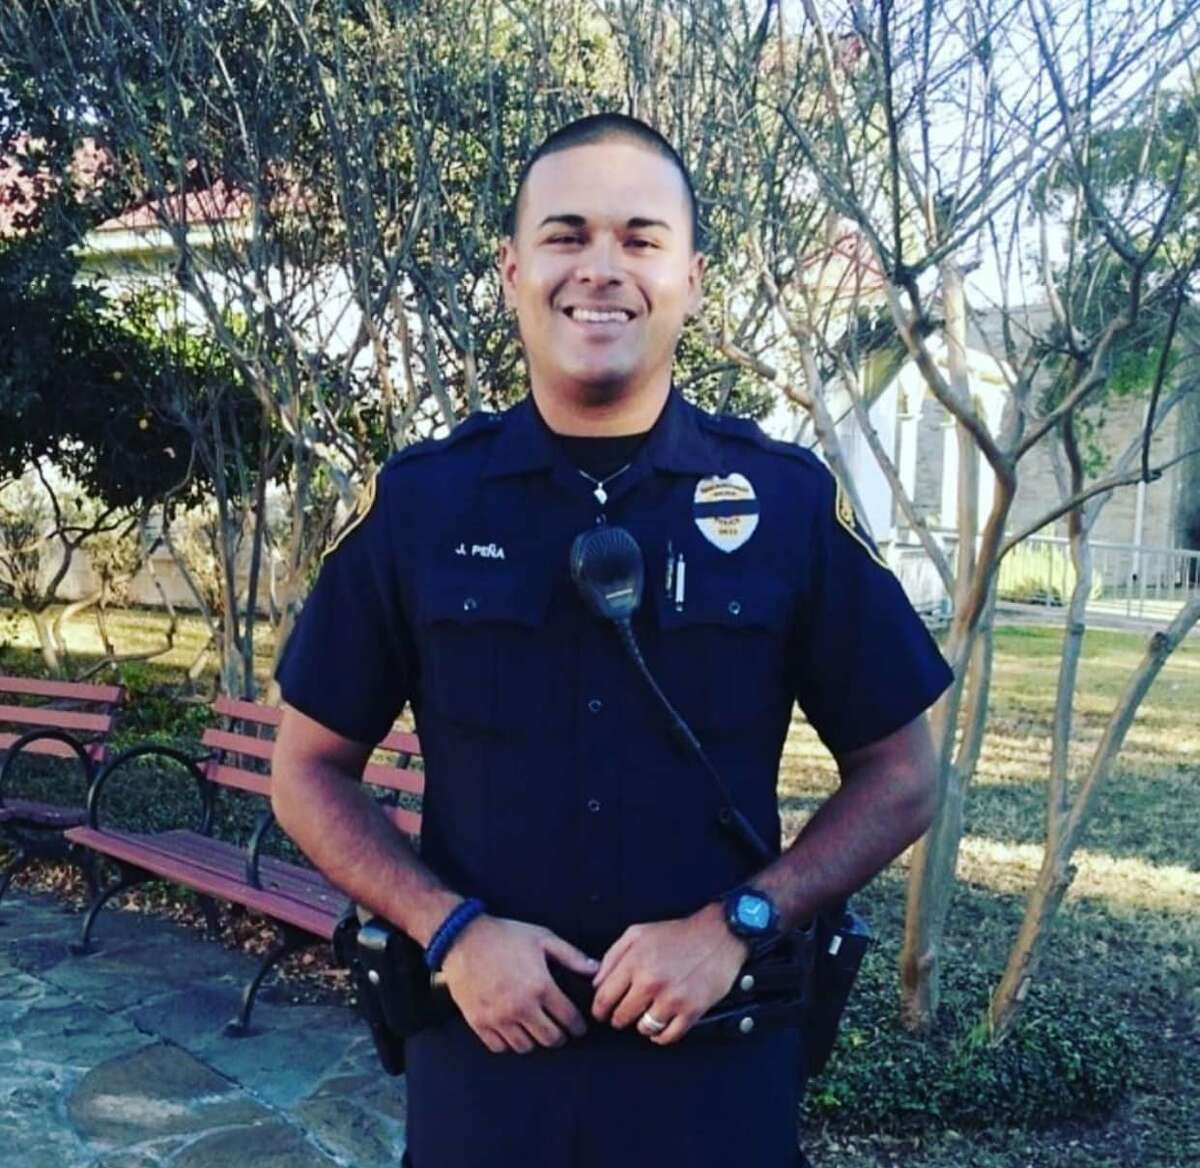 San Antonio Park Police officer Jay Peña died from COVID-19 complications Sunday morning, the department confirmed.